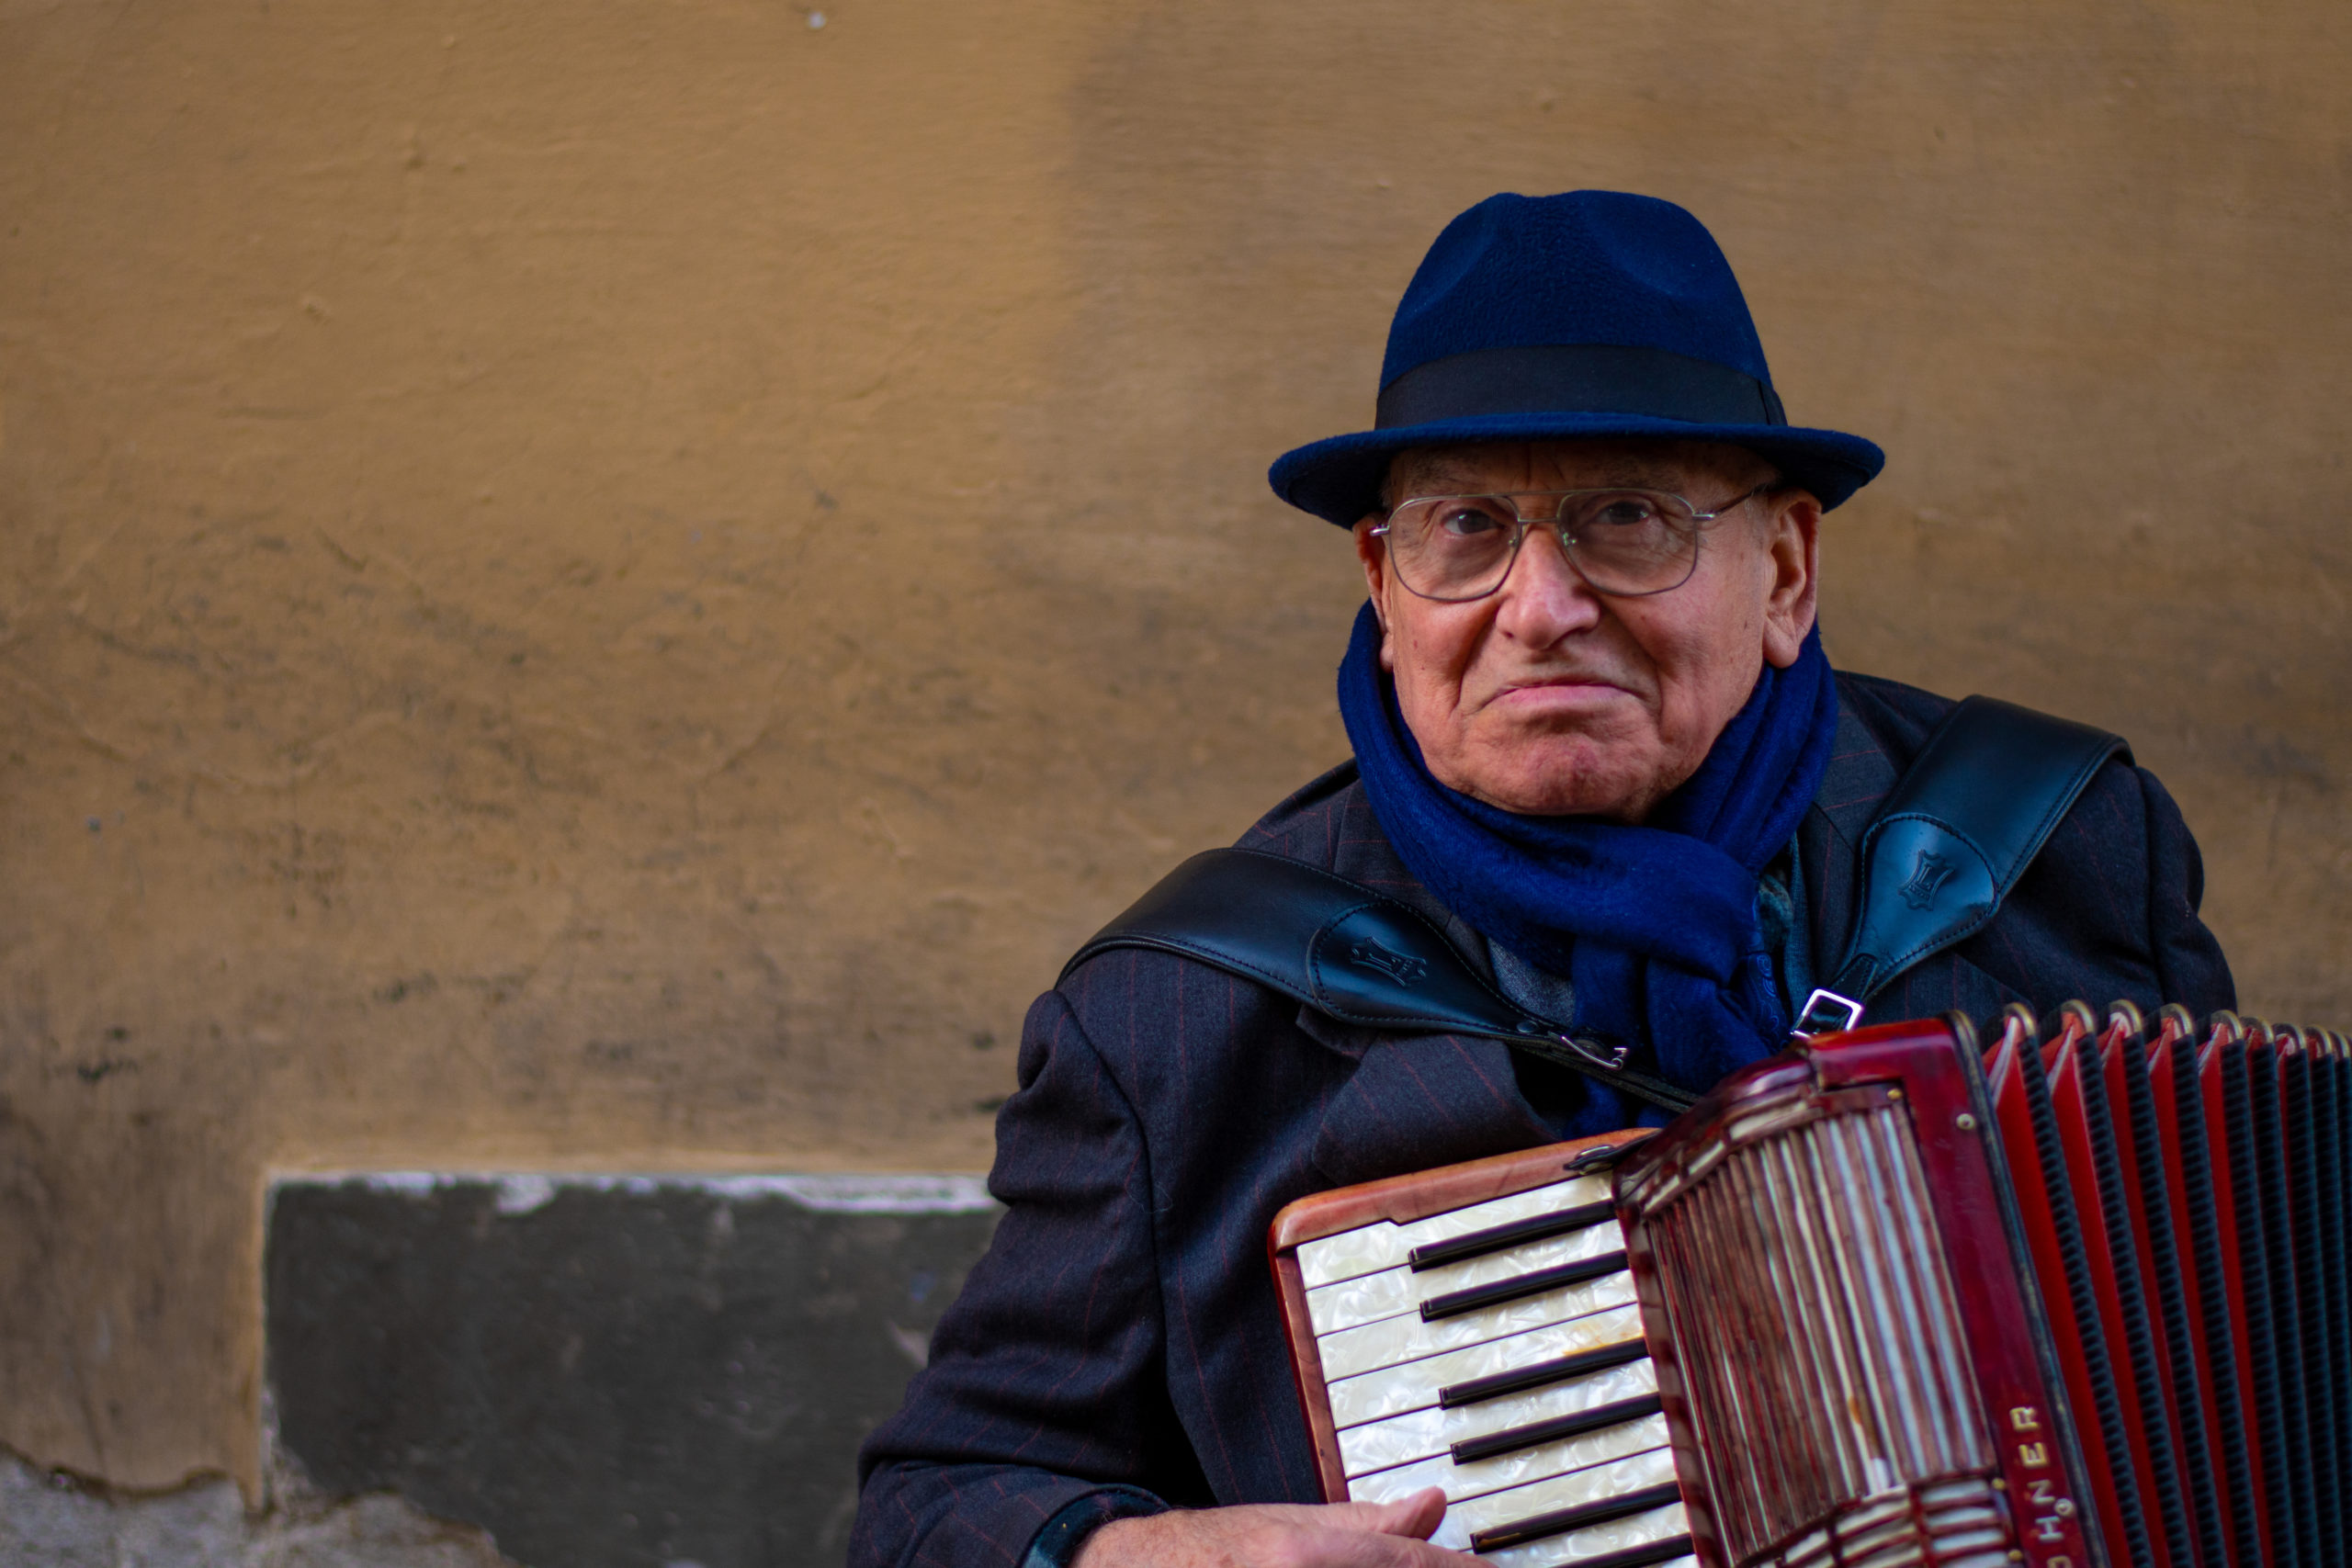 Florence Street Performer, by John Monarch